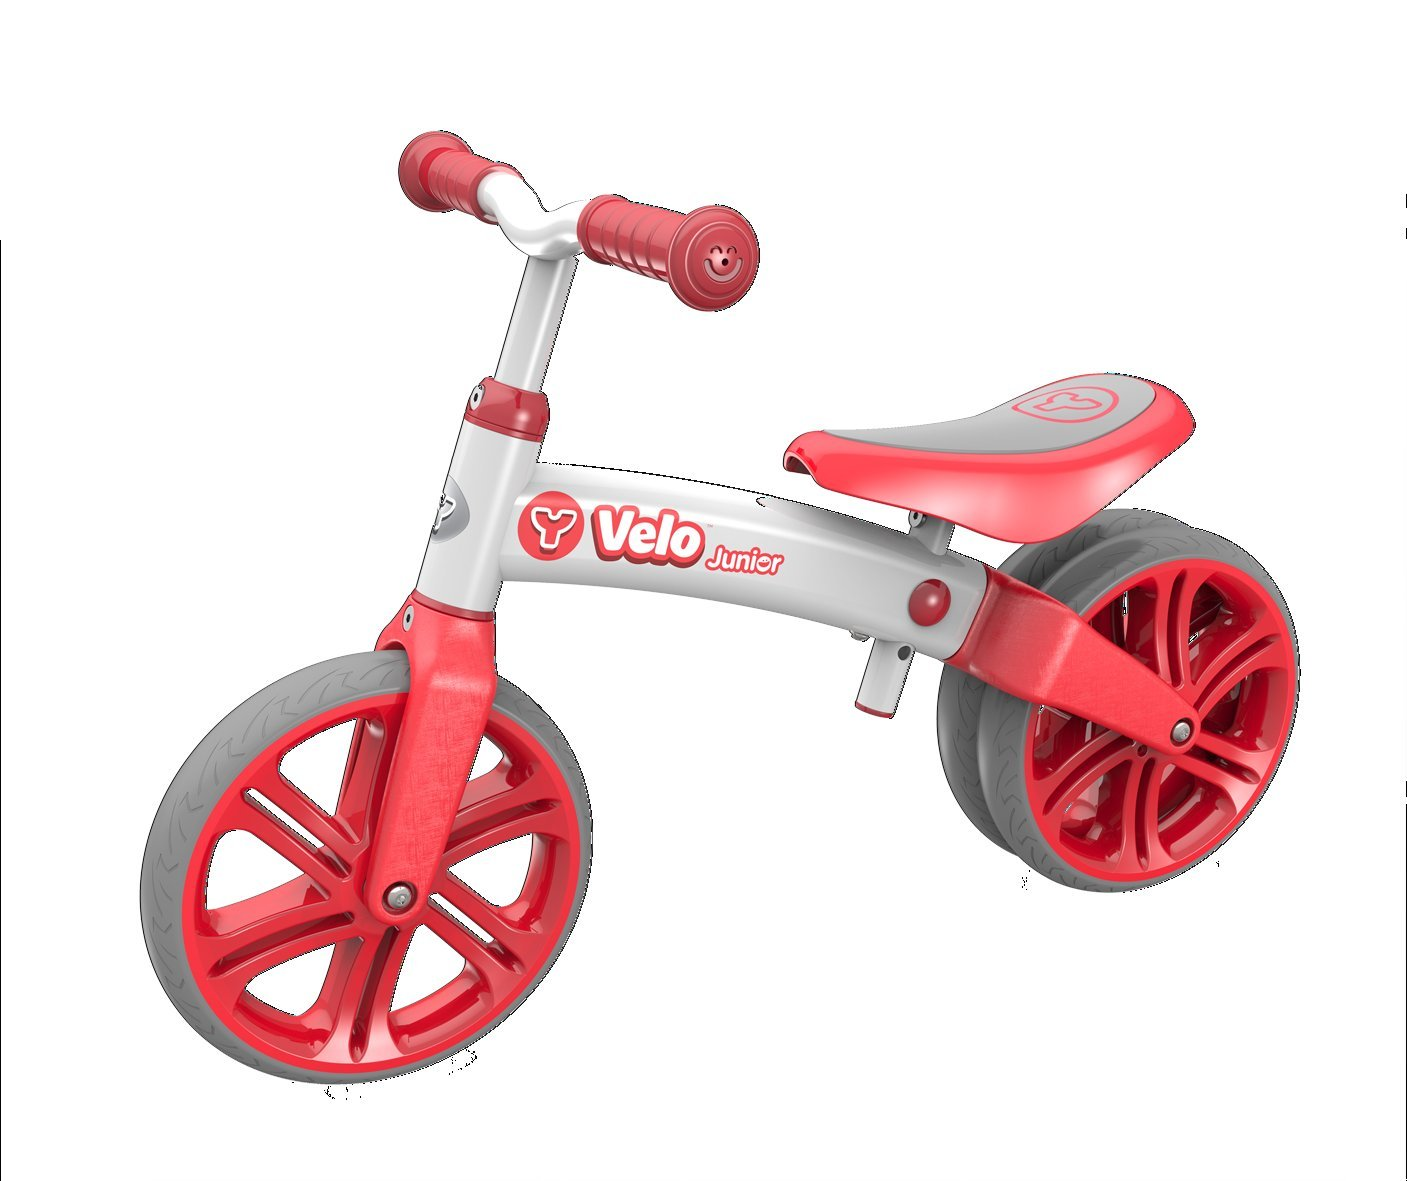 Yvolution Y Velo Junior | No-Pedal Balance Bike for Kids (red) by Yvolution